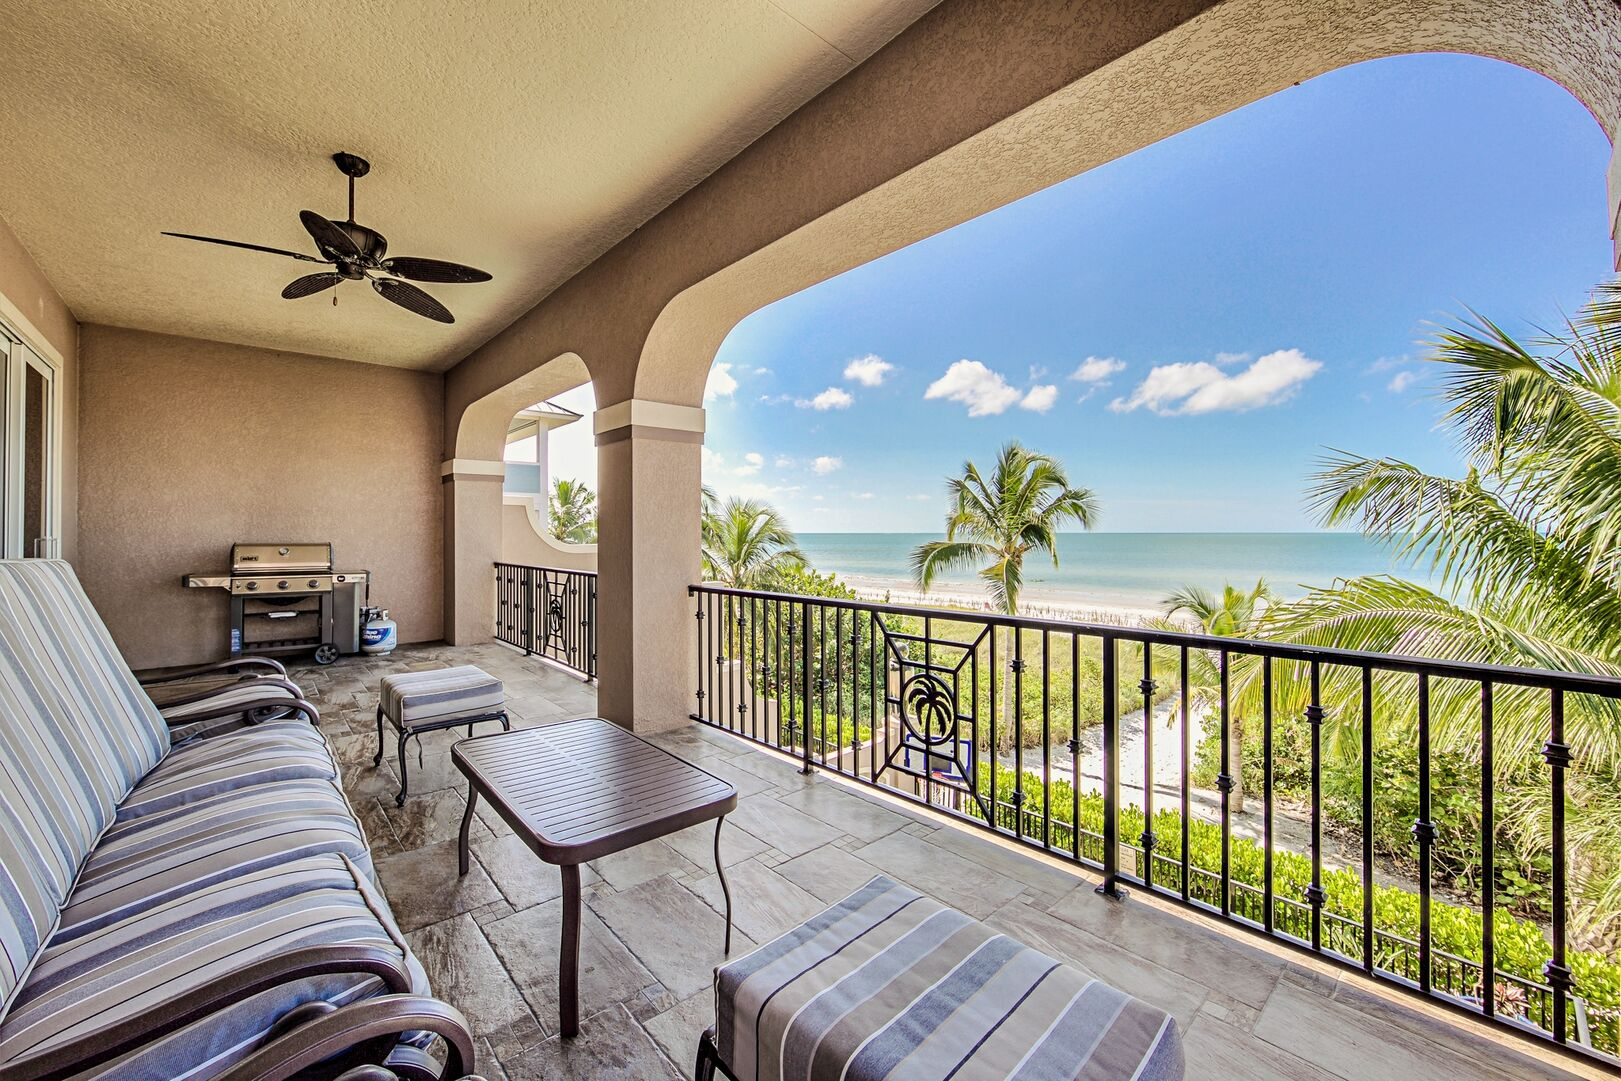 Spacious Balcony with BBQ Grill, Ceiling Fan, and Outdoor Seating Set.